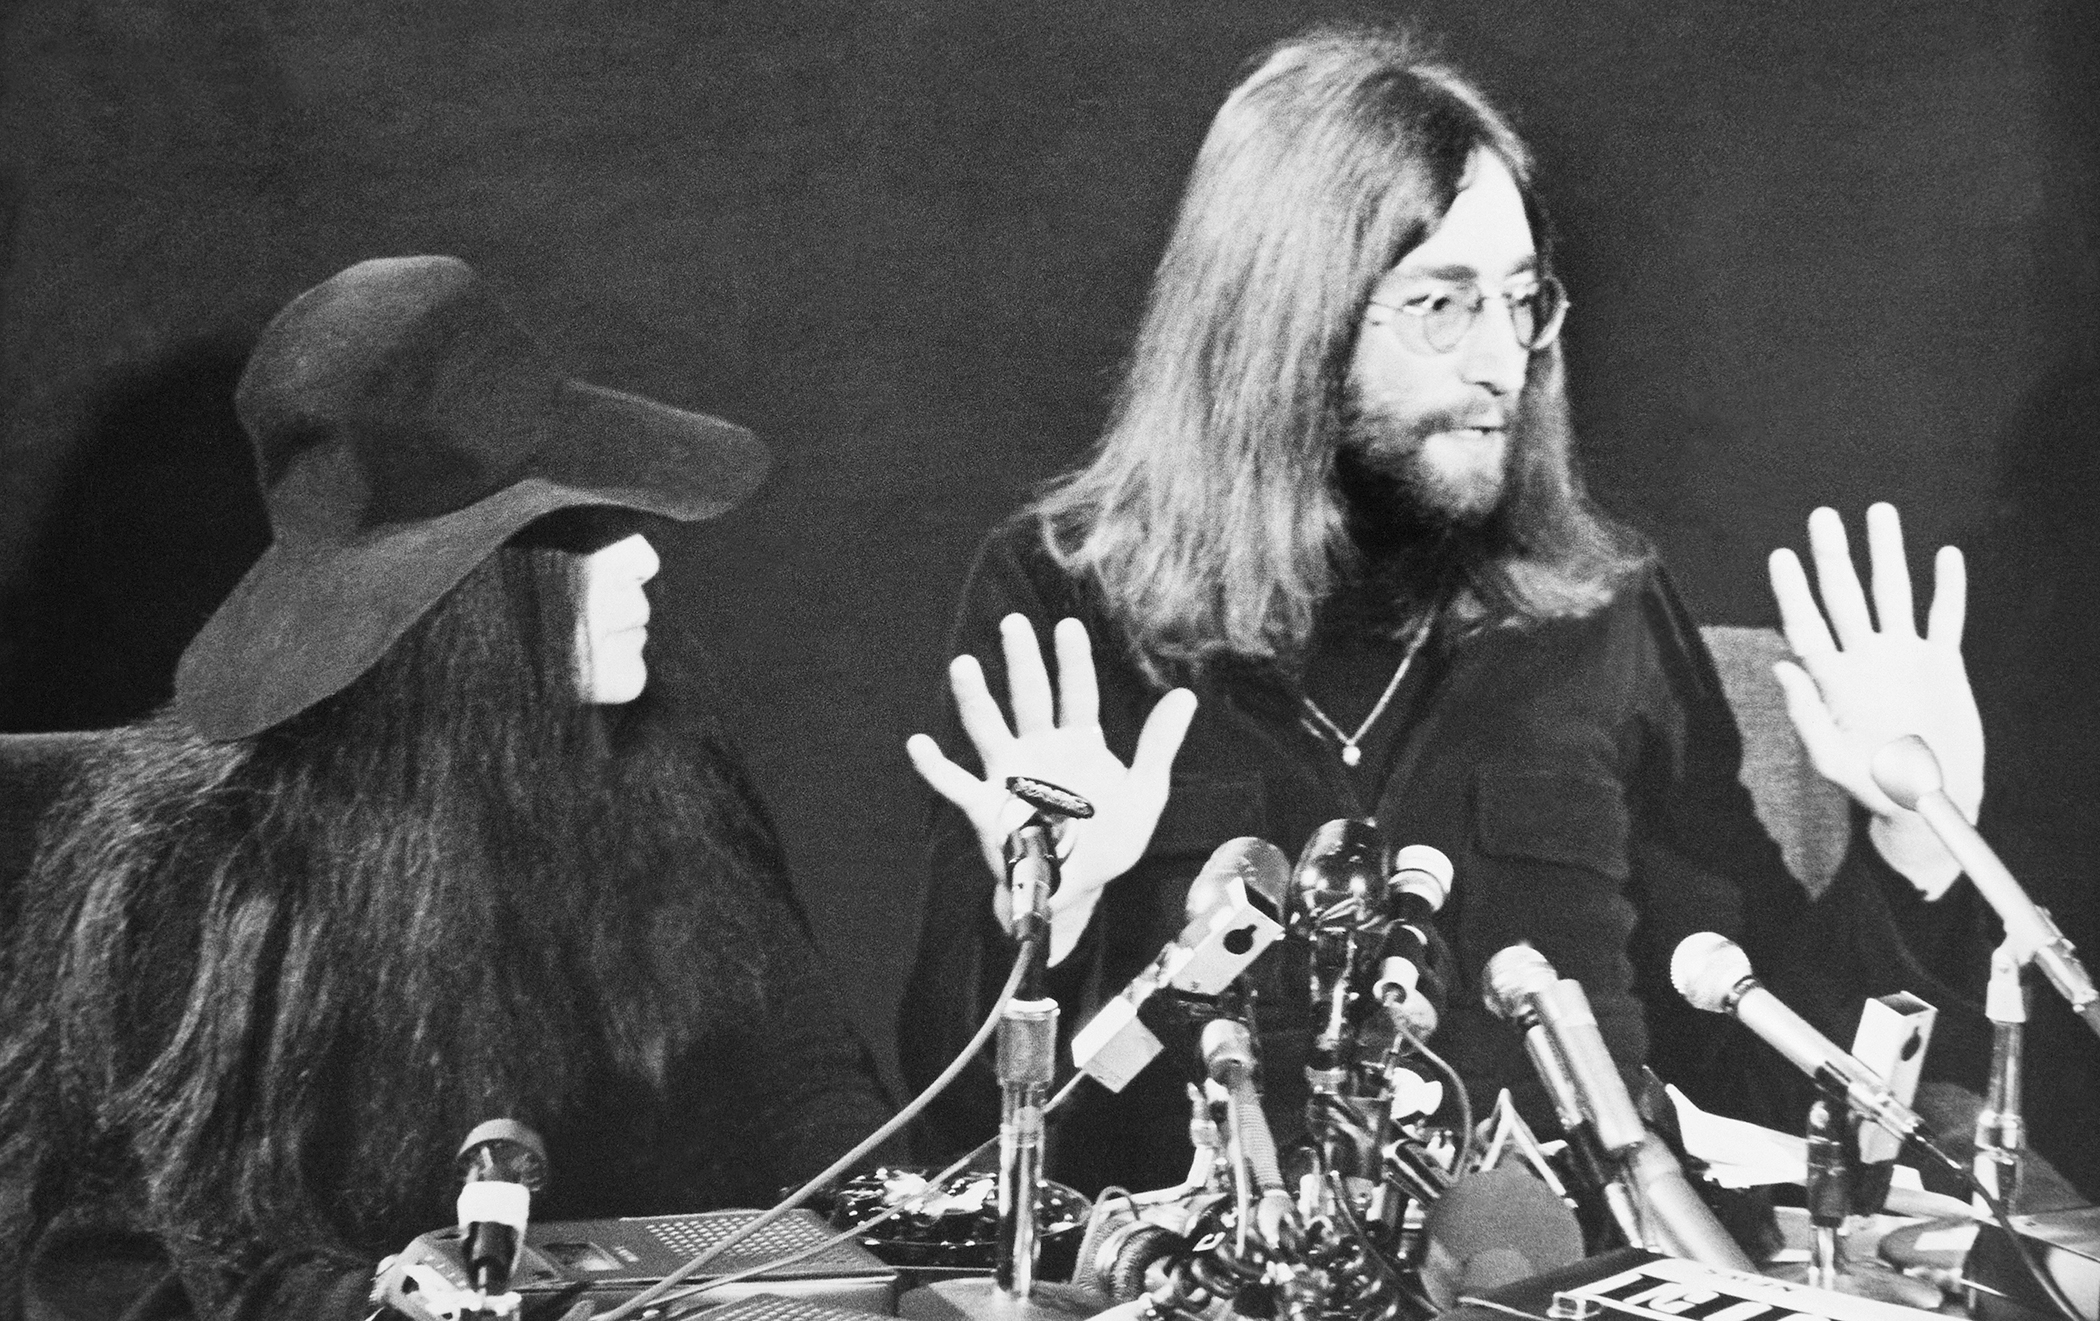 Portrait Of John Lennon And Yoko Ono During A Press Conference For Peace Persuasion At Toronto In Canada On December 1969.